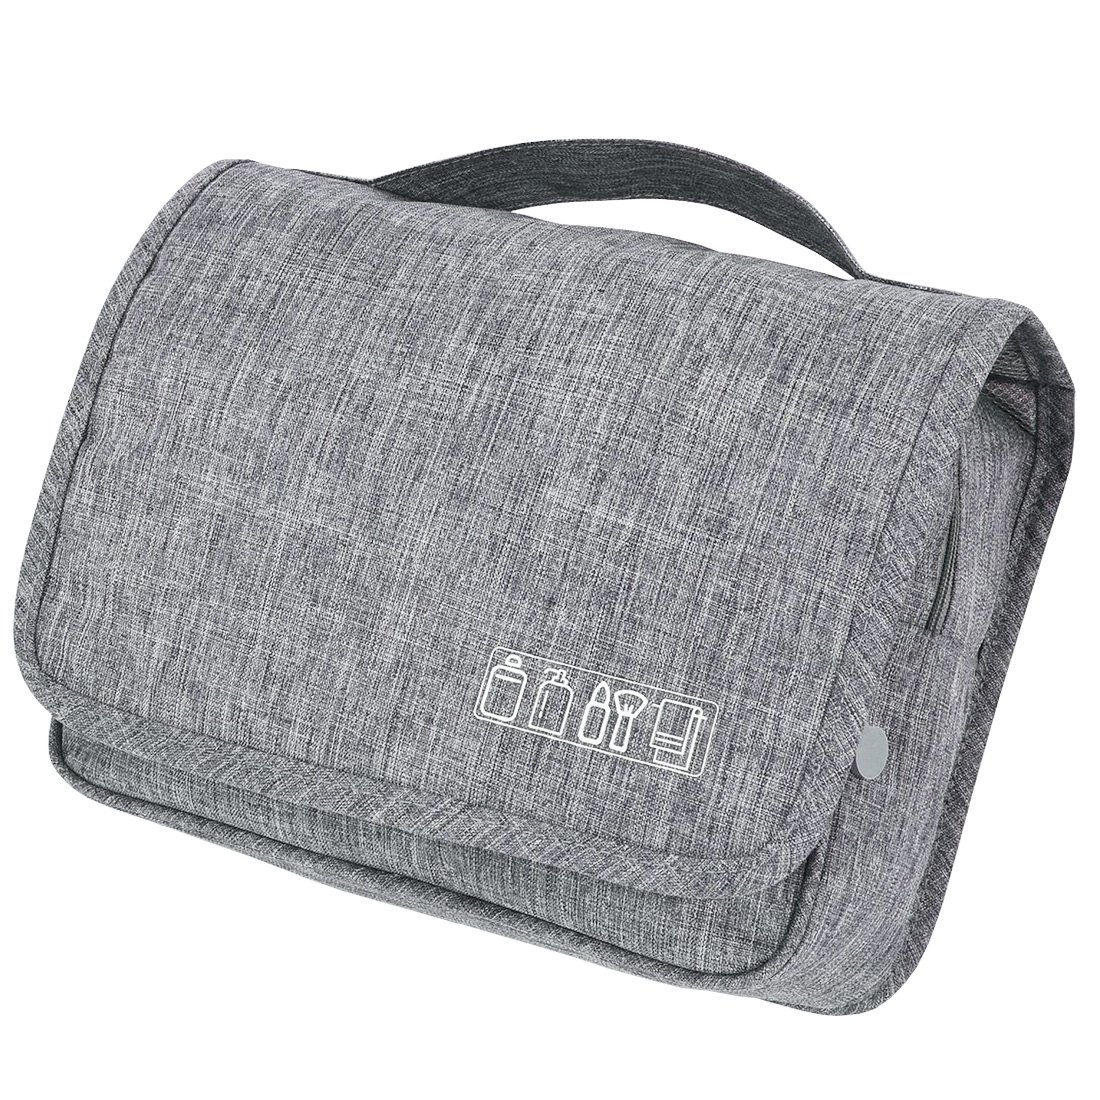 TePiLl Travel Toiletries Comestic Bag Case Portable Hanging Makeup Bathroom Brush Storage Pouch for Business, Camping, Vacation(Gray)